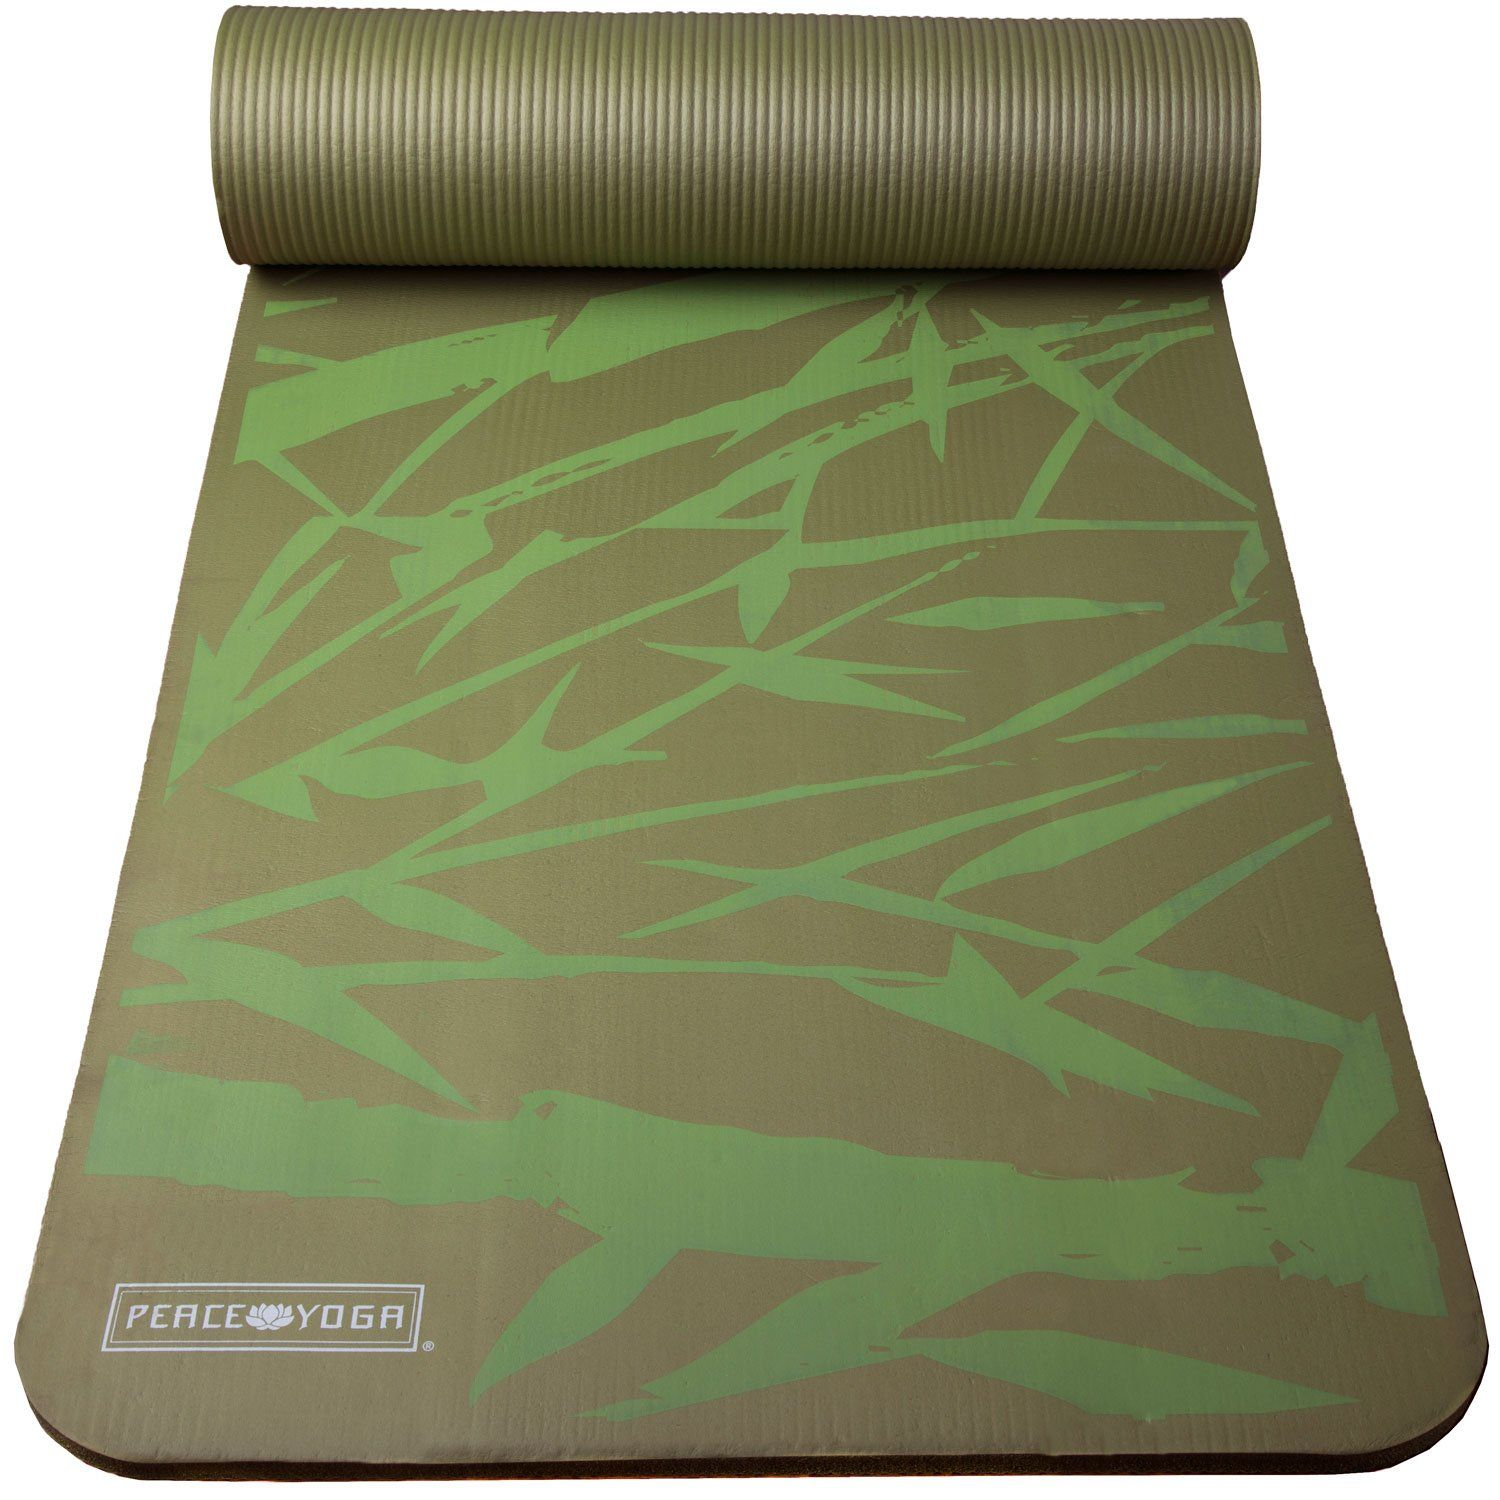 Peace Yoga Extra Thick Exercise Mat Green Green Bamboo Inch Package Includes Peace Yoga Green 1 2 I Thick Exercise Mat Mat Exercises Difficult Yoga Poses